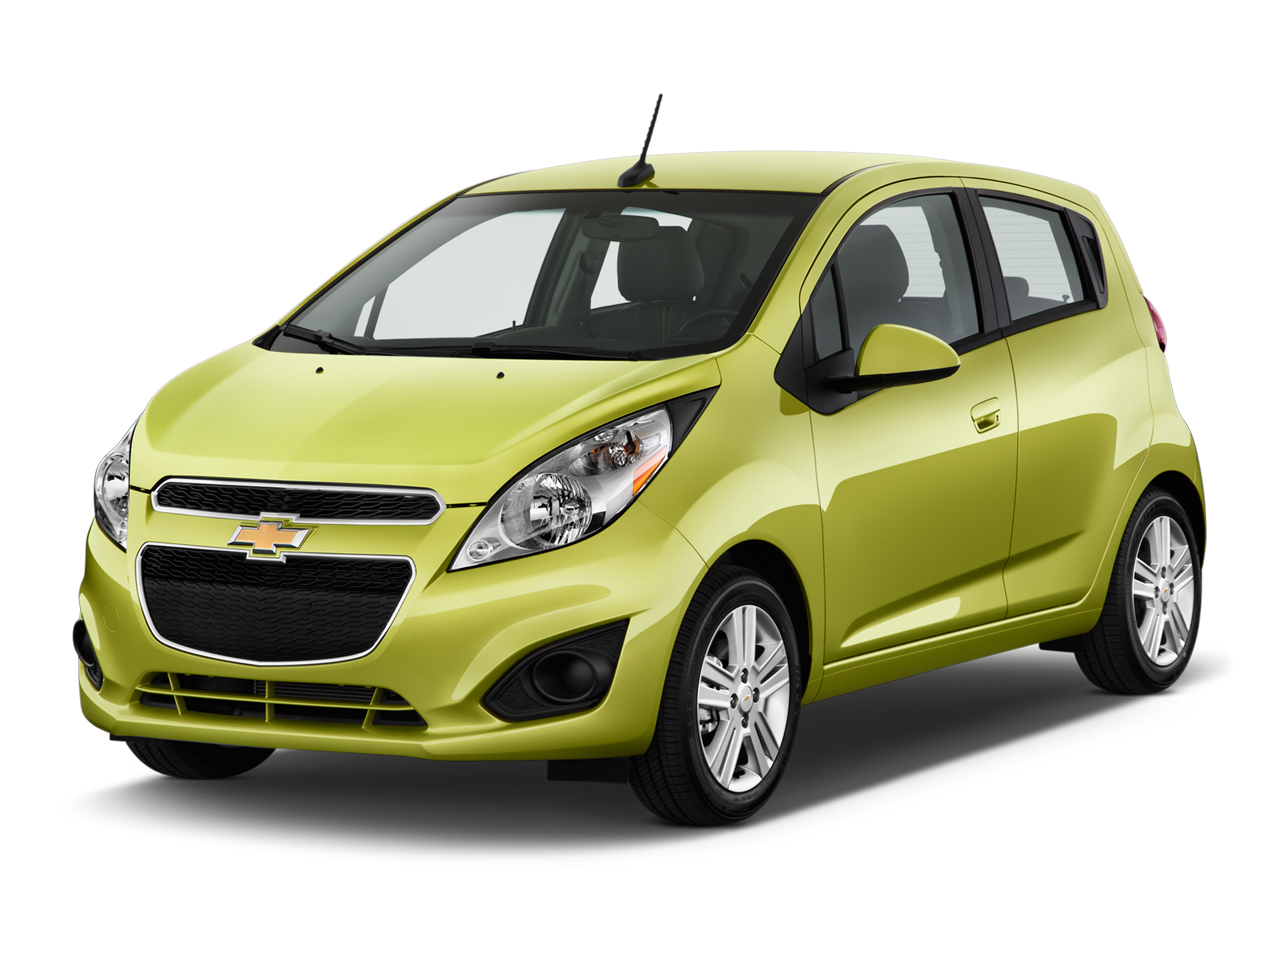 Chevrolet Spark Electric Car Price In India